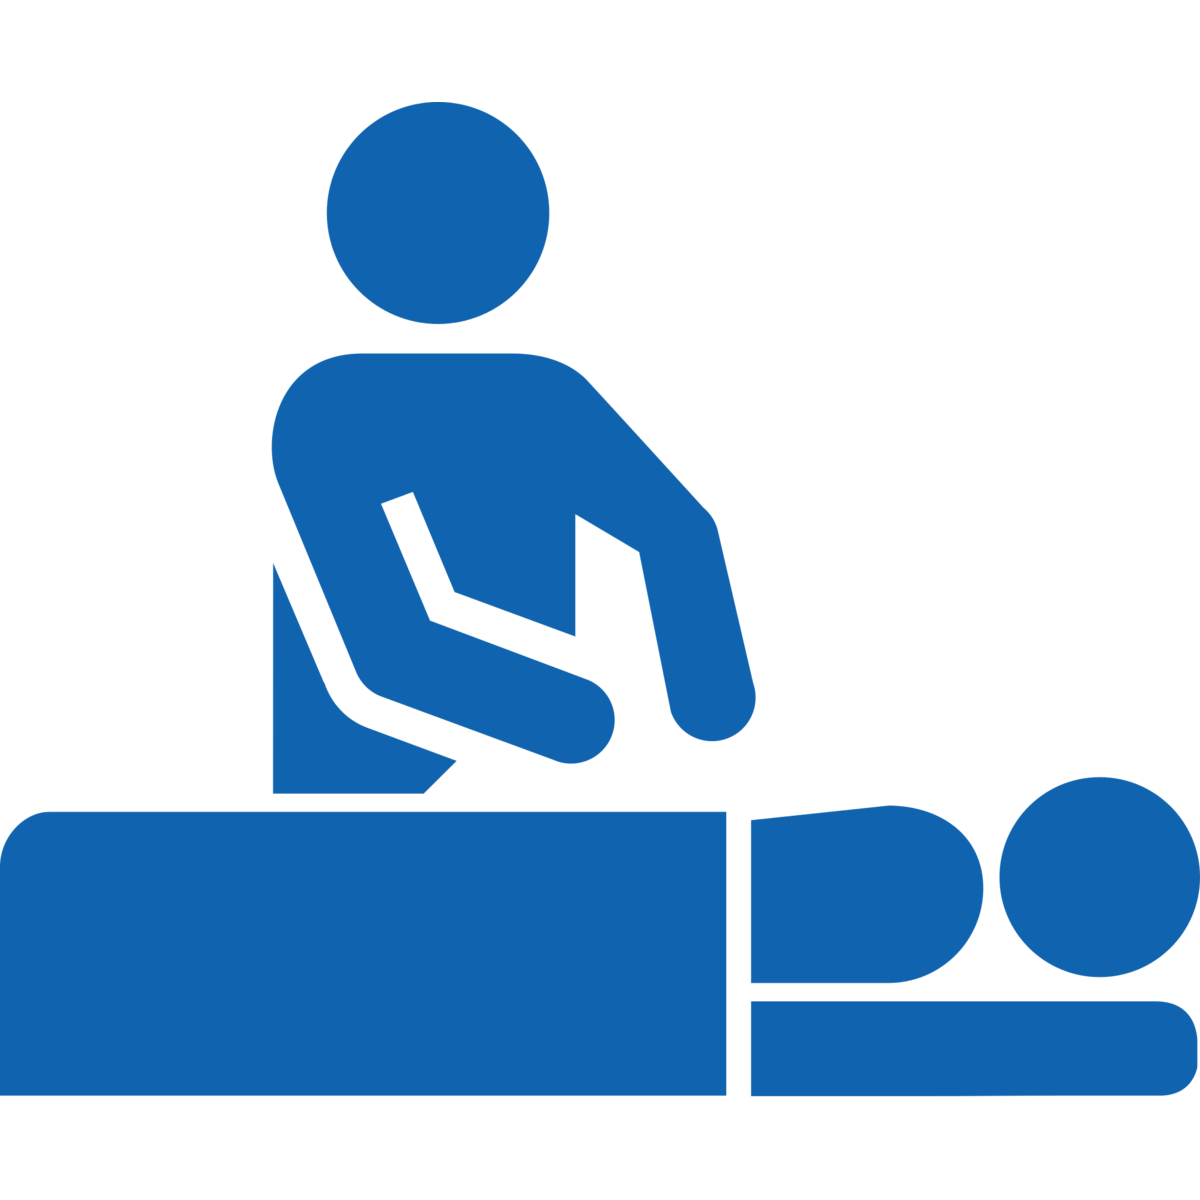 Massage vector art. Physical therapy icons png